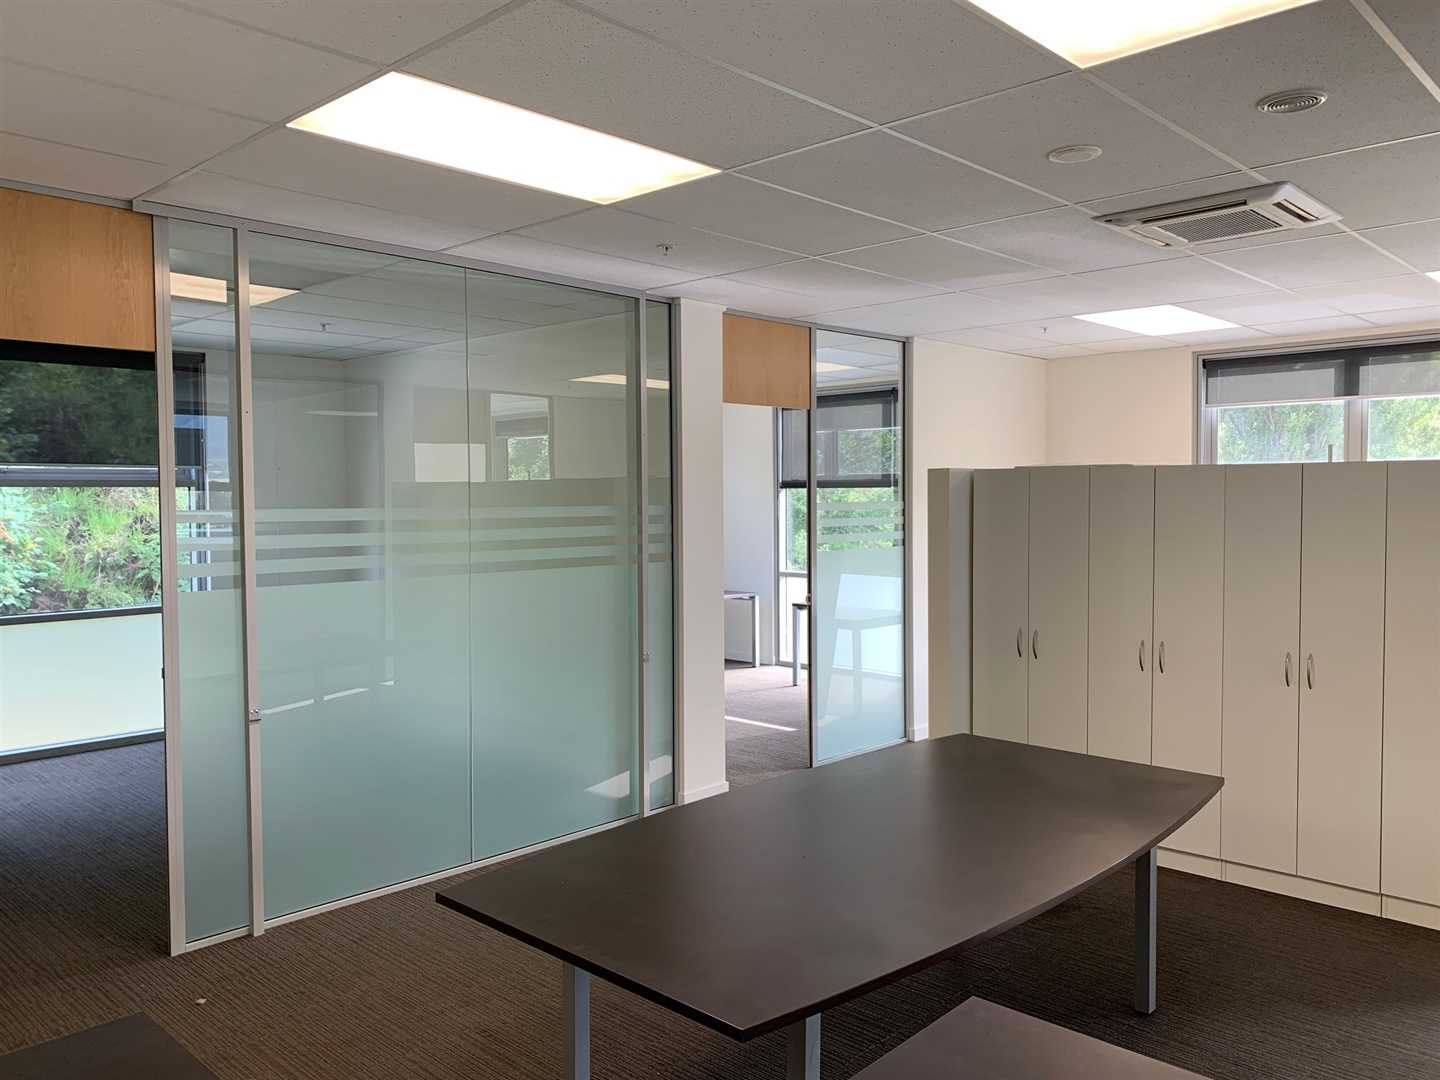 Large internal area for meetings and filing